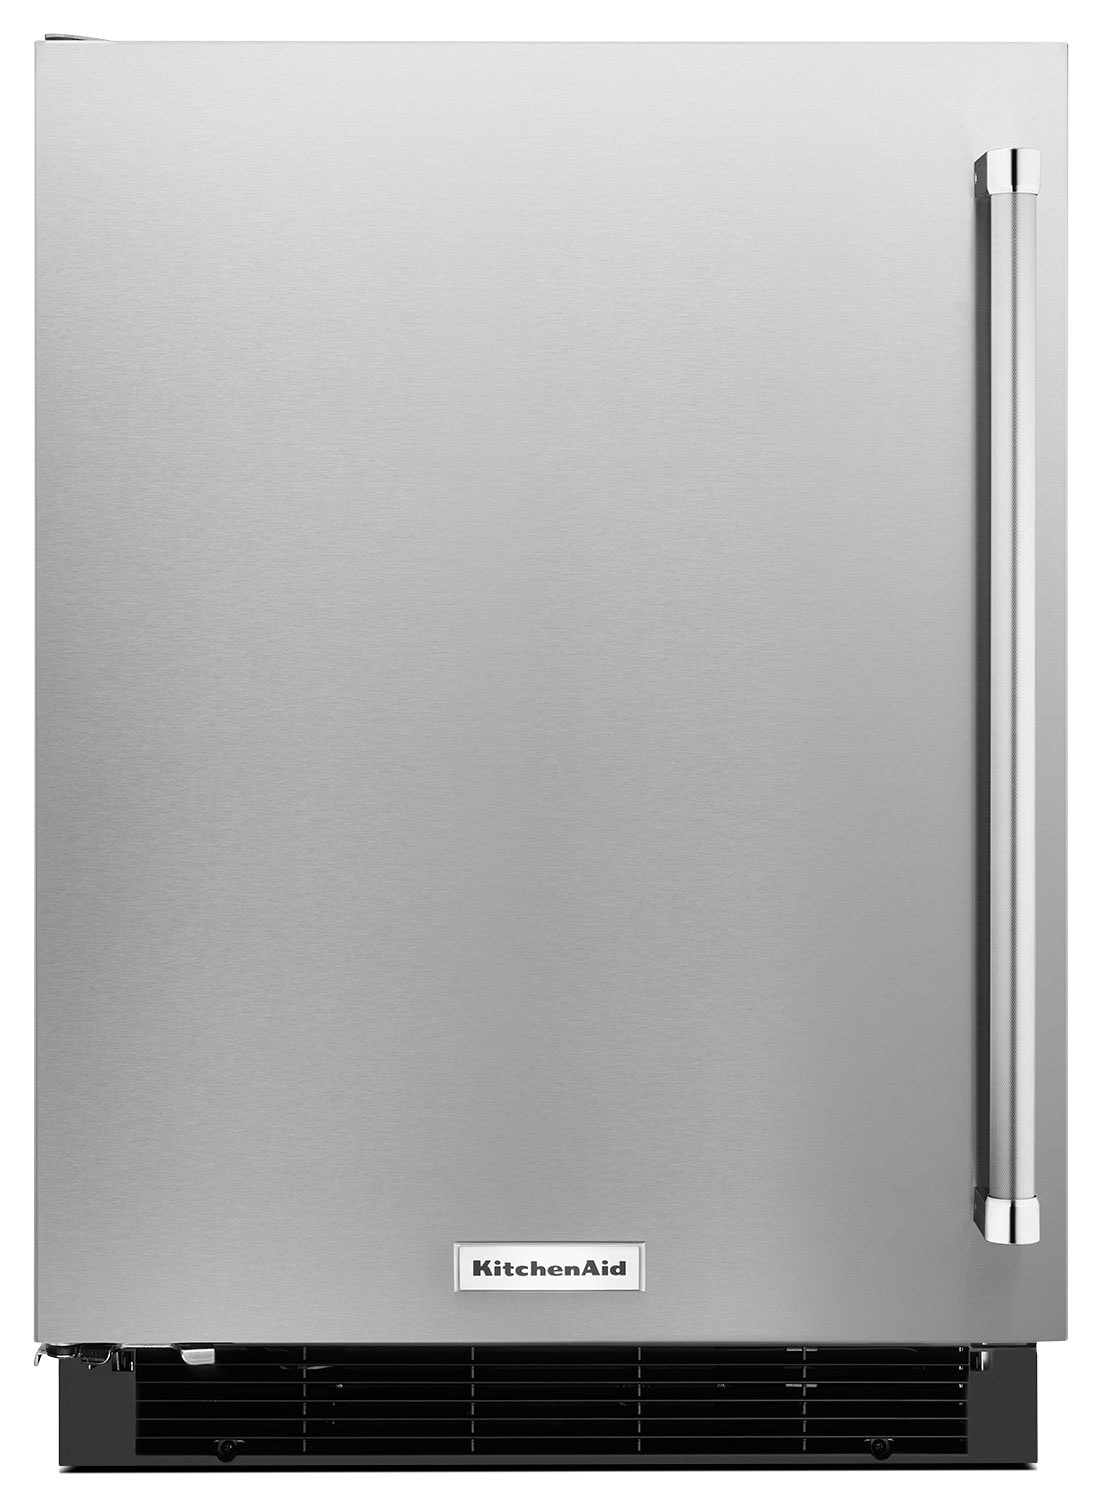 KitchenAid 4.9 Cu. Ft. Undercounter Refrigerator with Left Door Swing - Stainless Steel